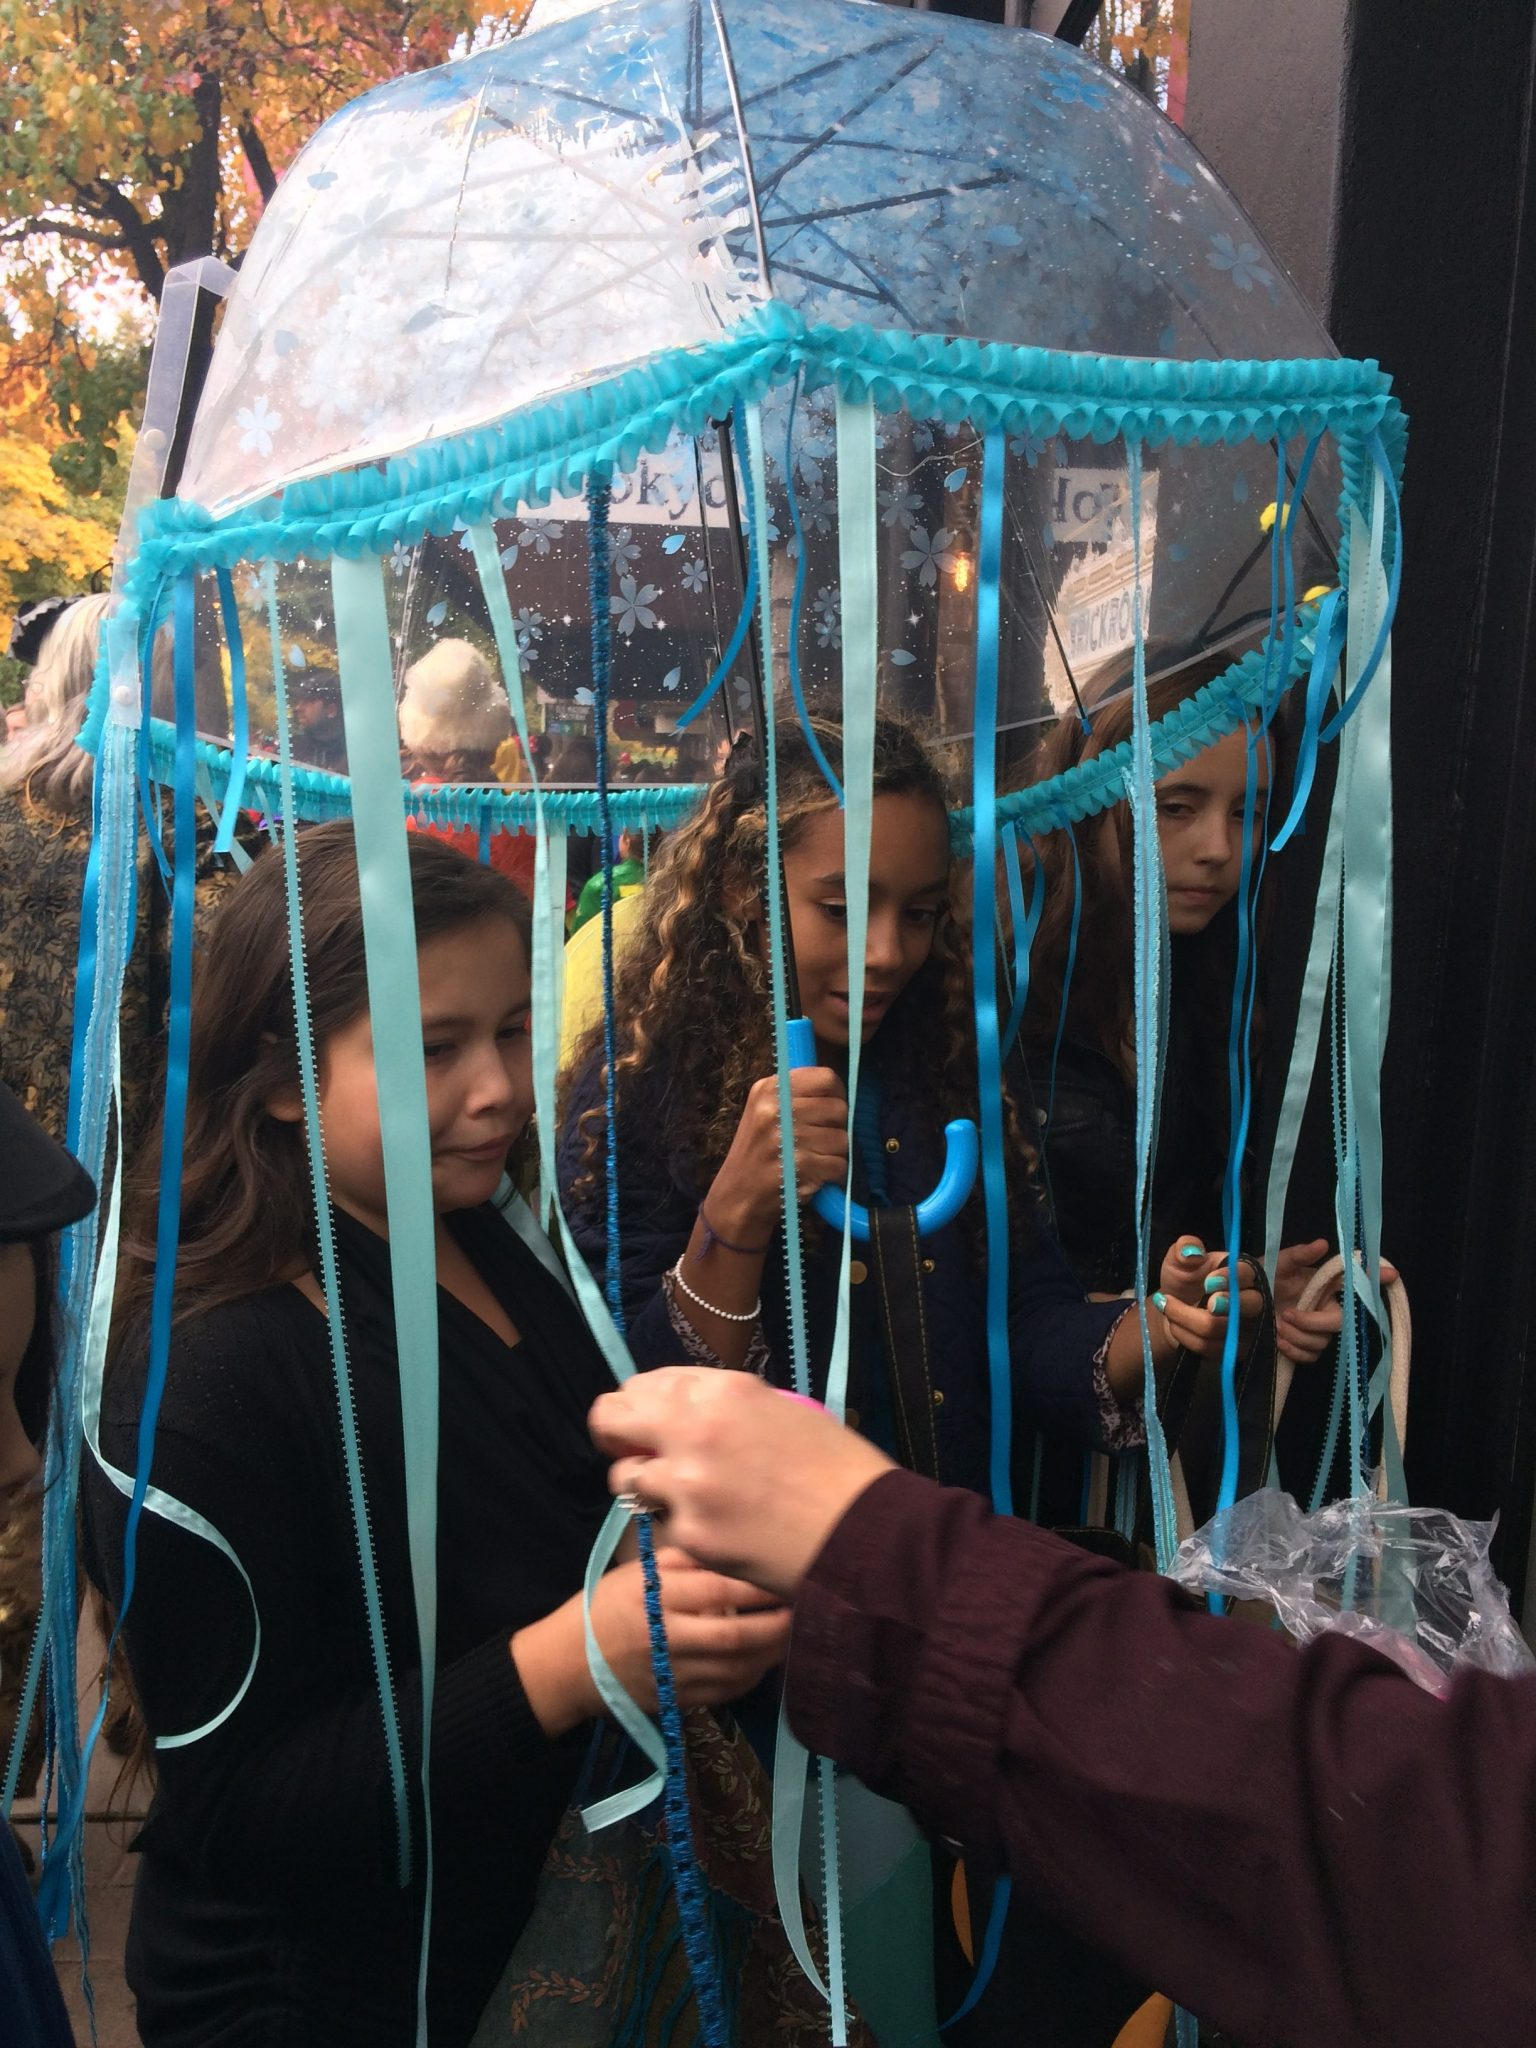 Jellyfish trick-or-treating on the Plaza in Ashland, Oregon during the Halloween parade